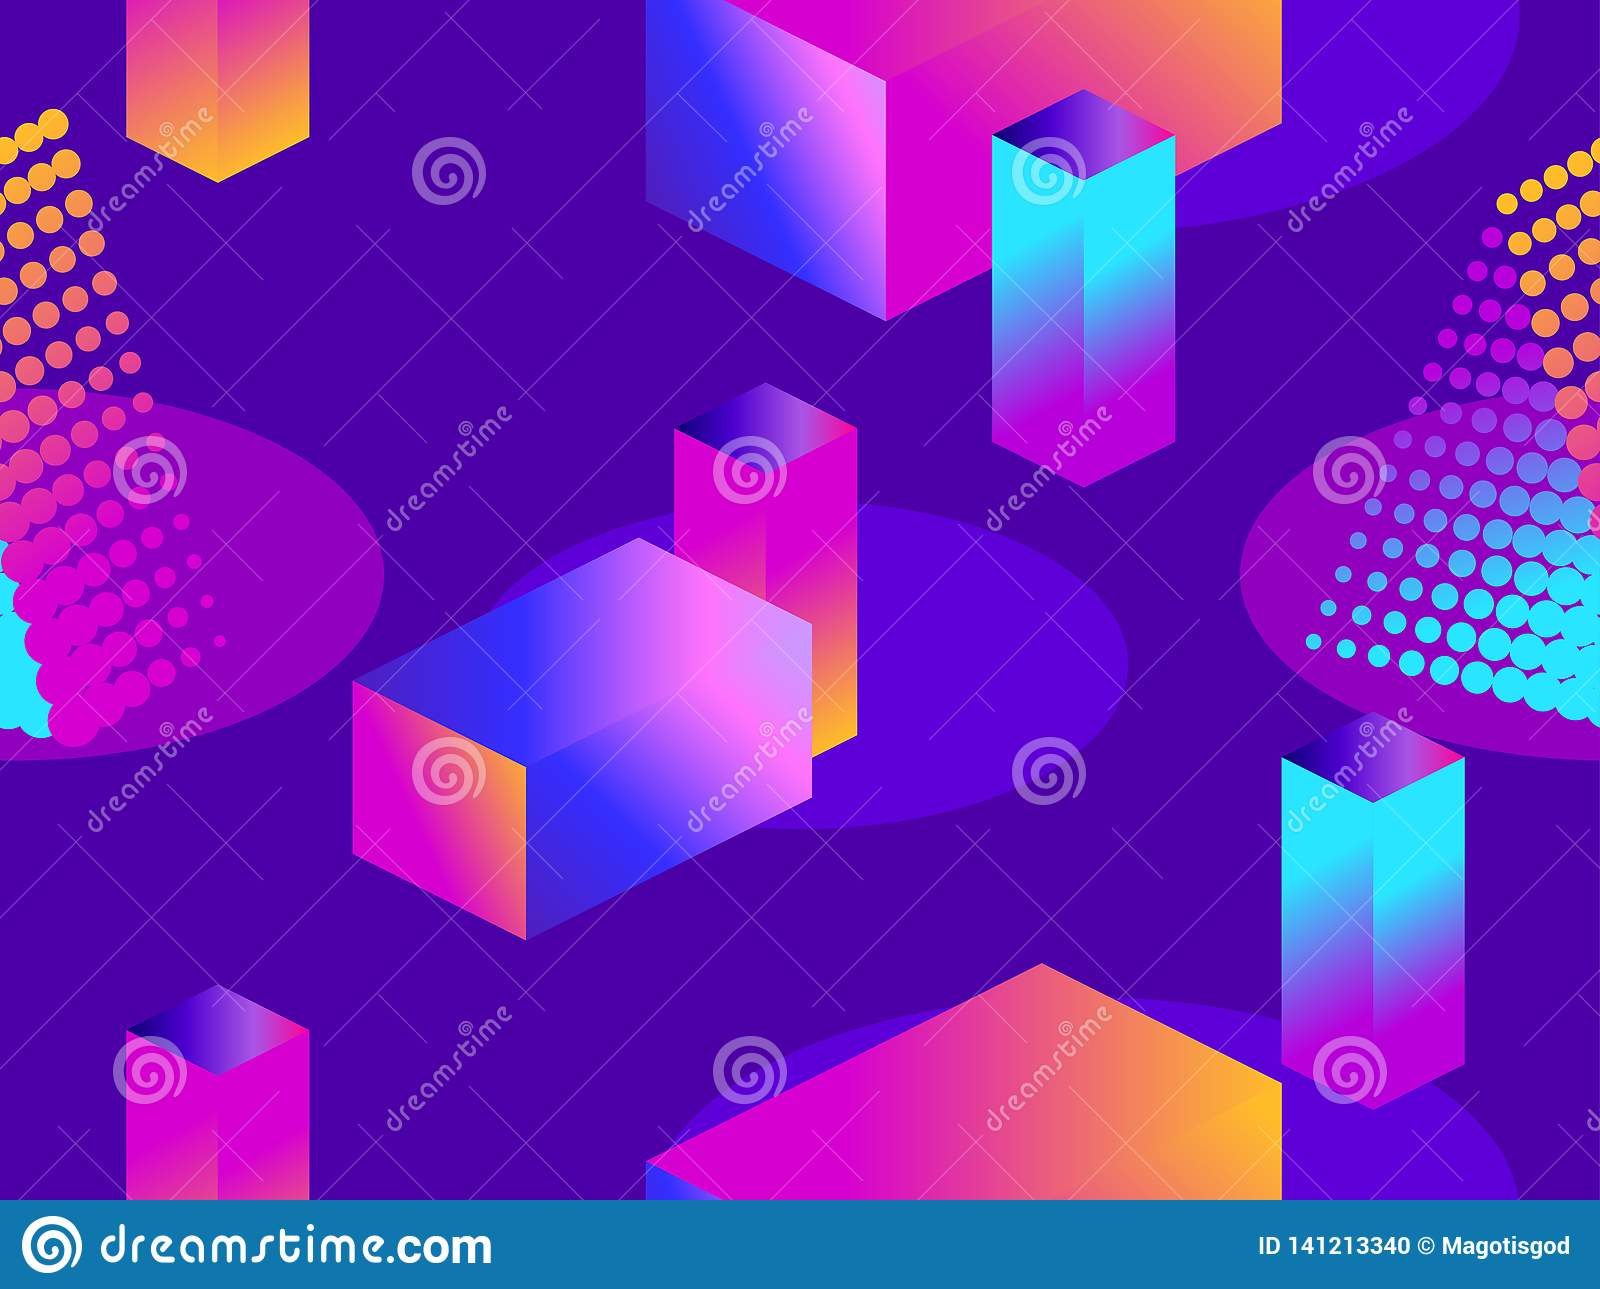 Futuristic seamless pattern with geometric shapes. Isometric 3d objects. Purple and blue gradient. Retrowave. Vector